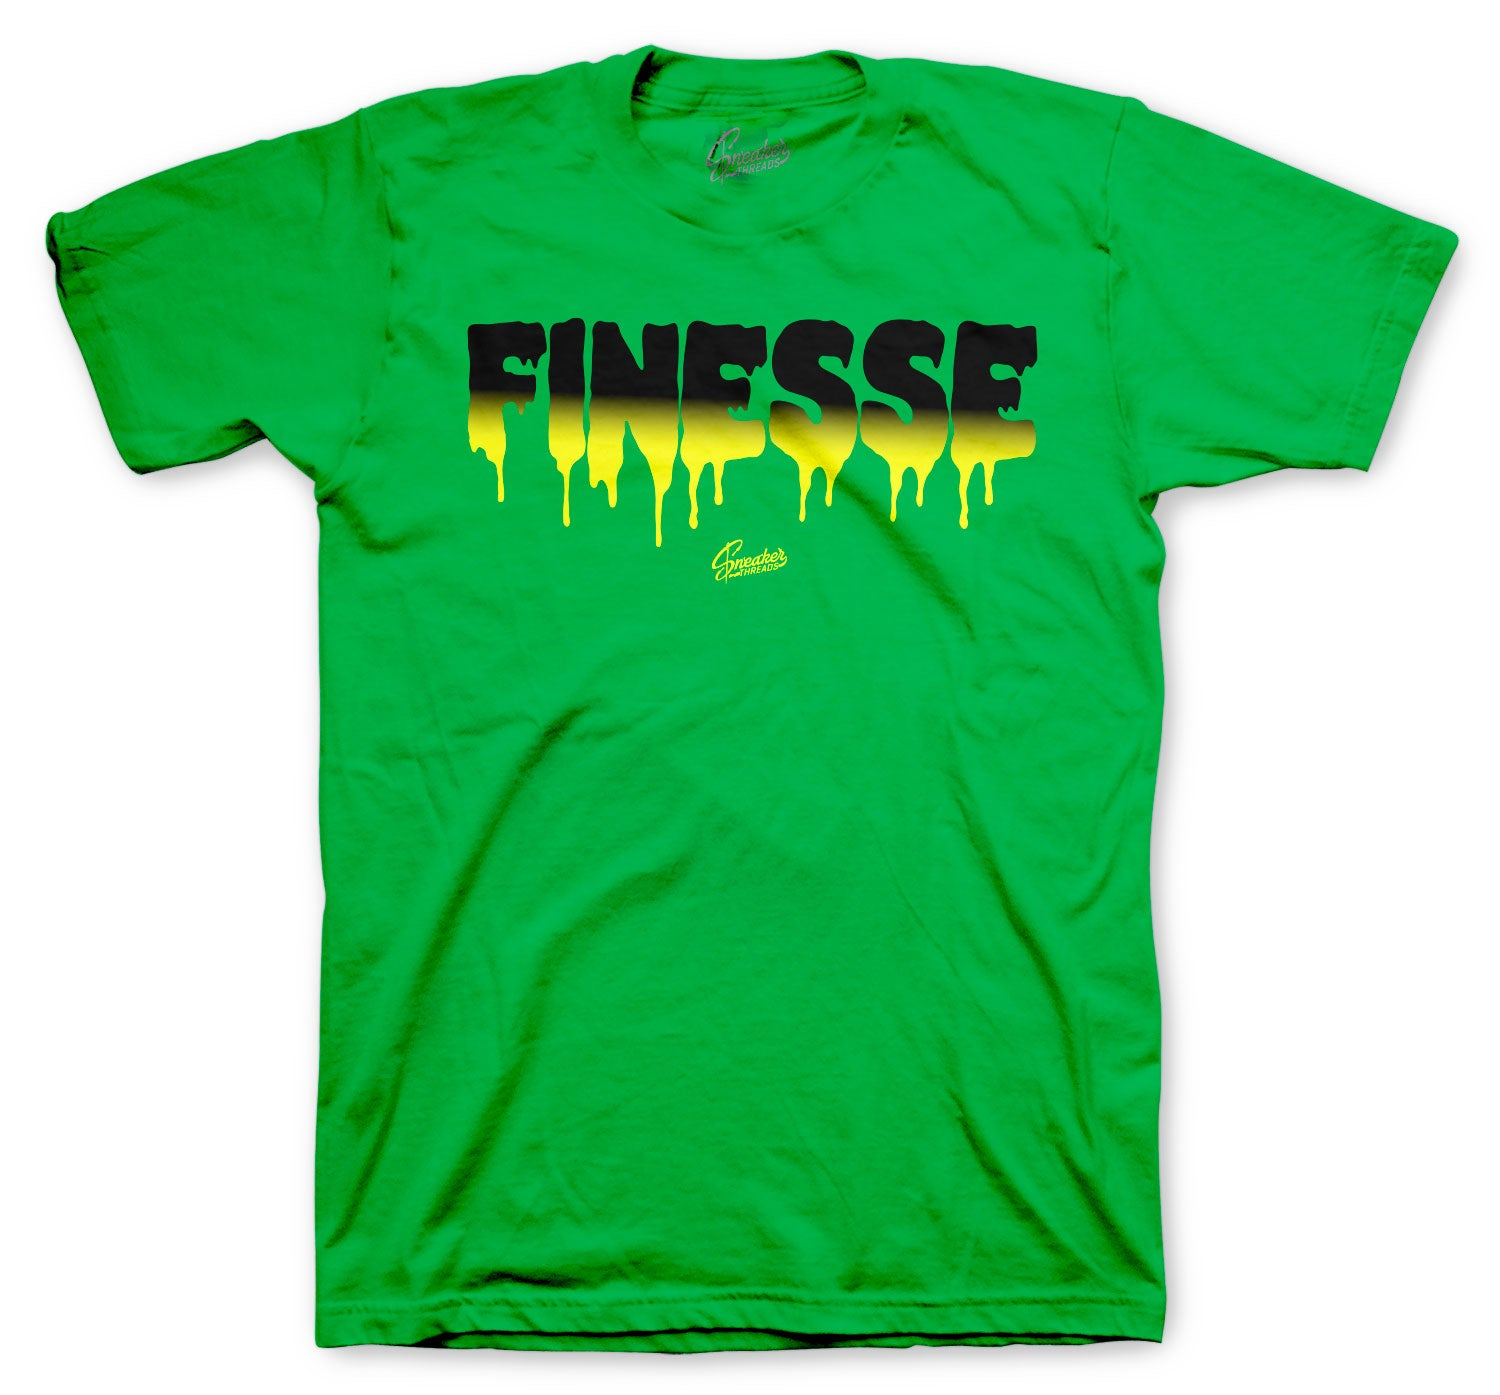 Jordan 5 Oregon Finesse Shirt